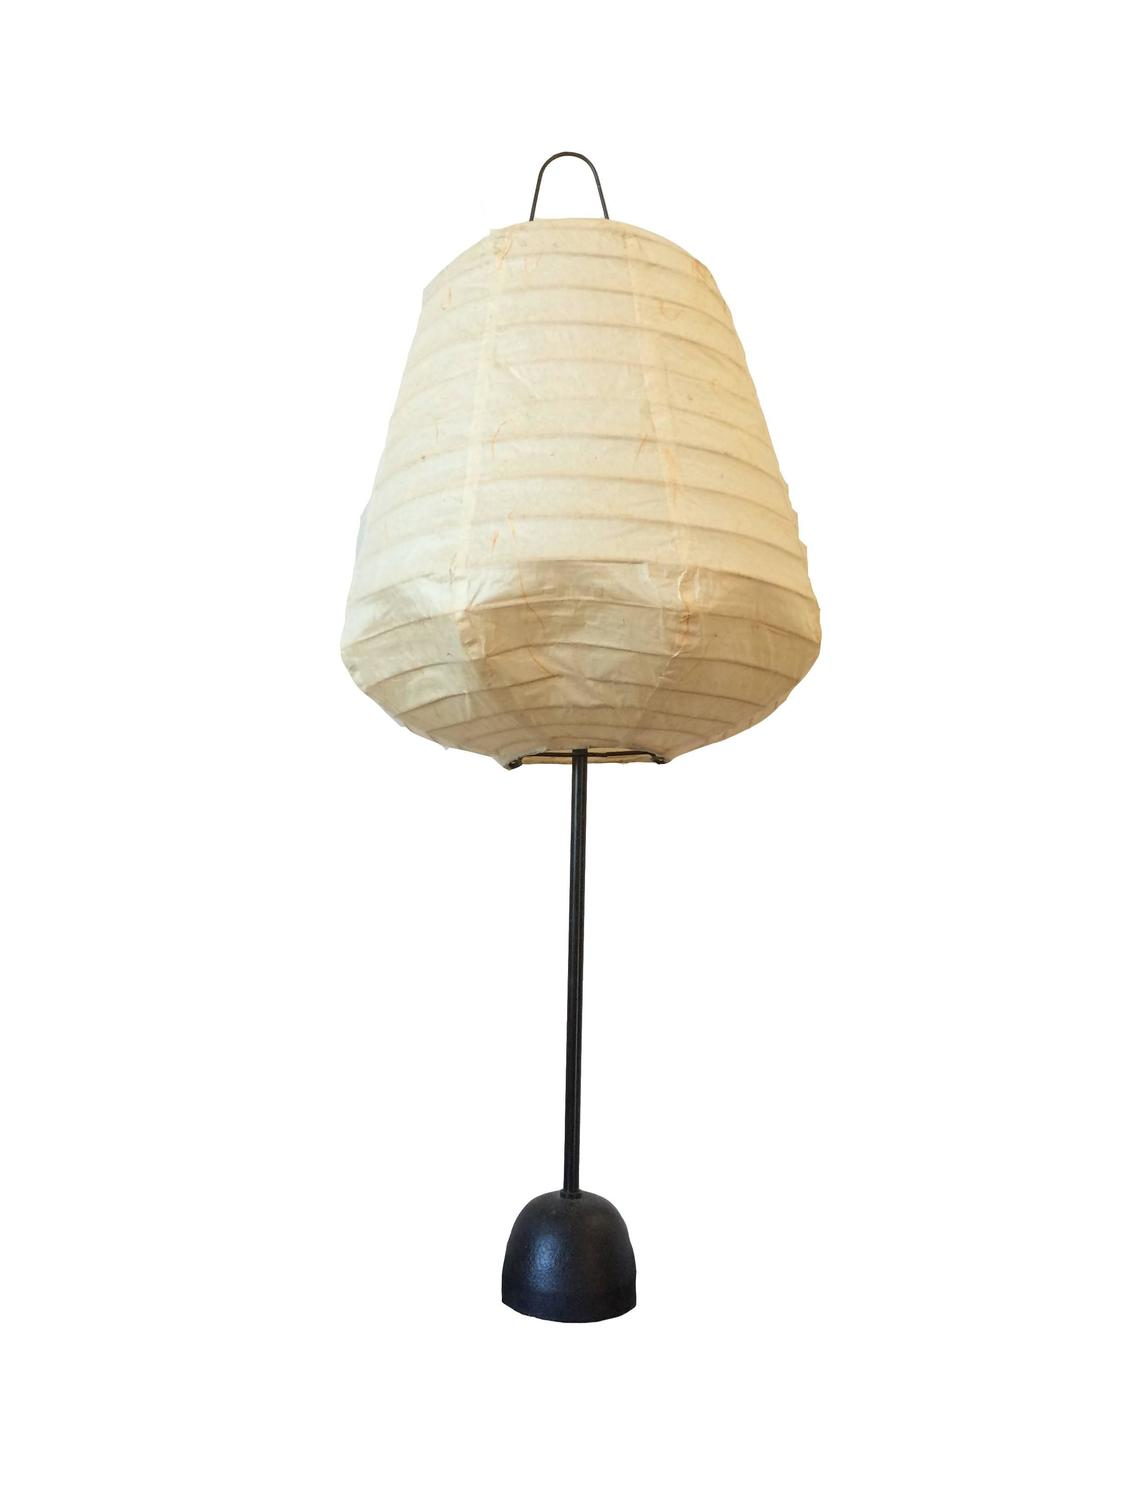 isamu noguchi akari style lamp for sale at 1stdibs. Black Bedroom Furniture Sets. Home Design Ideas